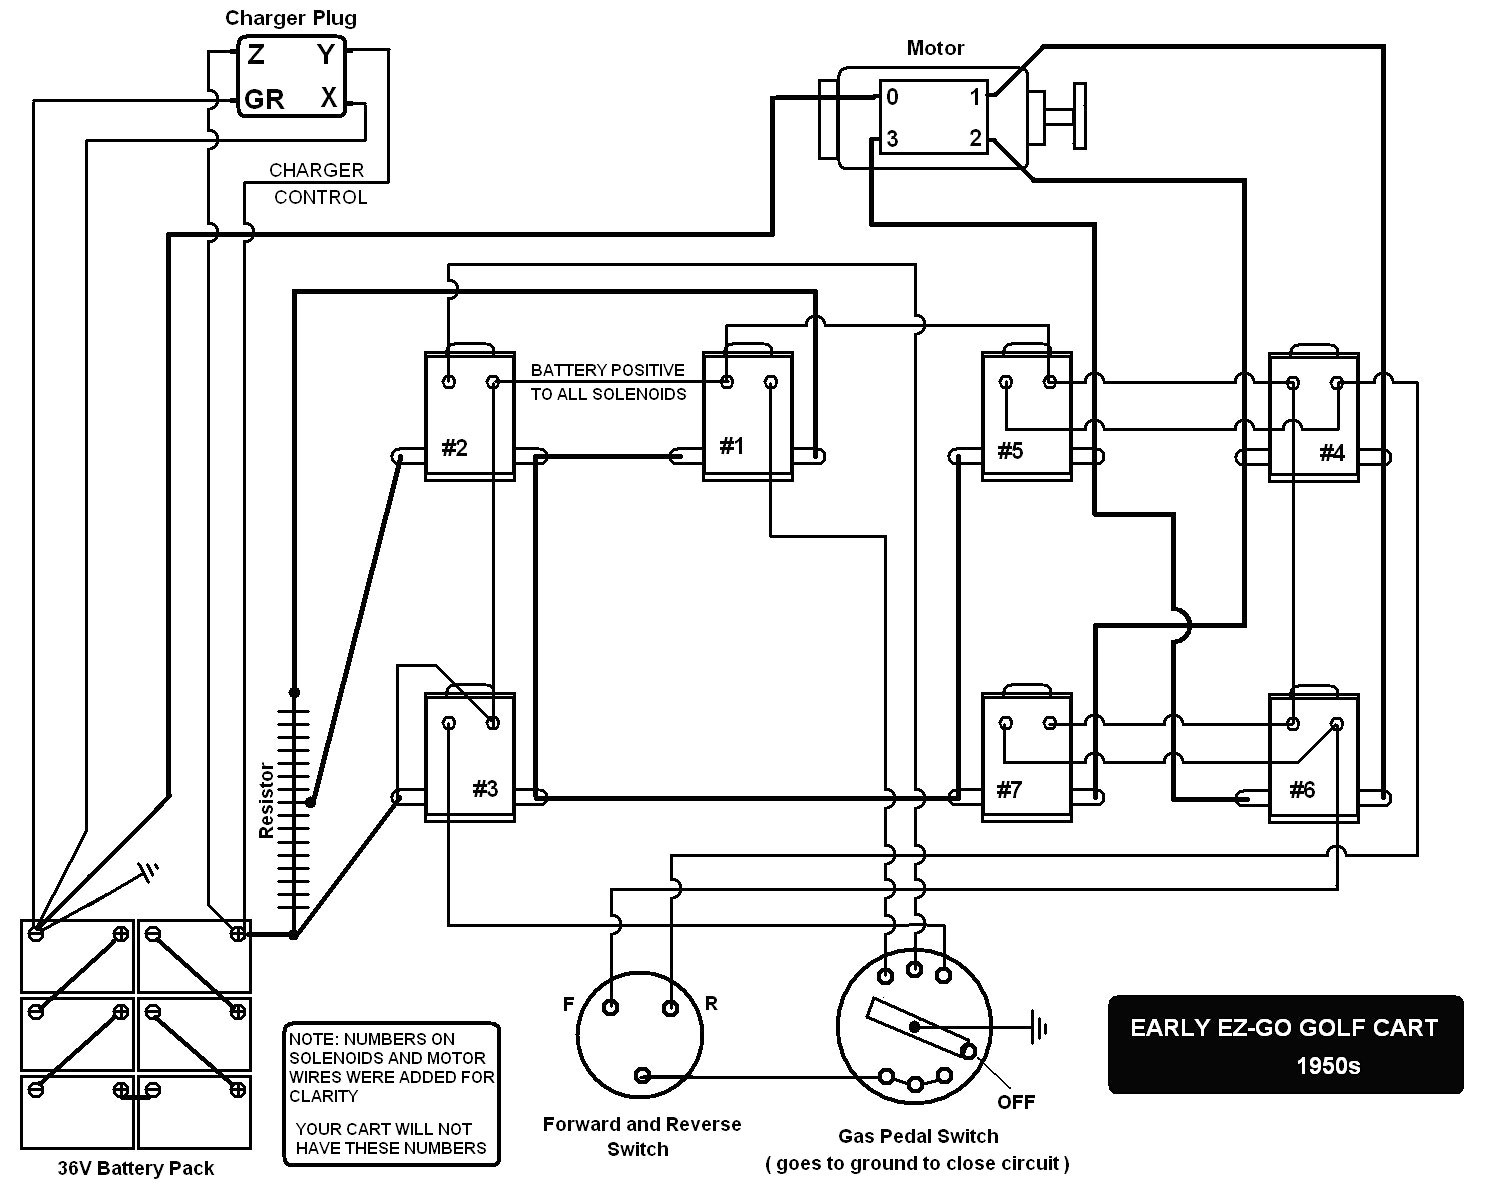 1990 Ez Go Gas Golf Cart Wiring Diagram